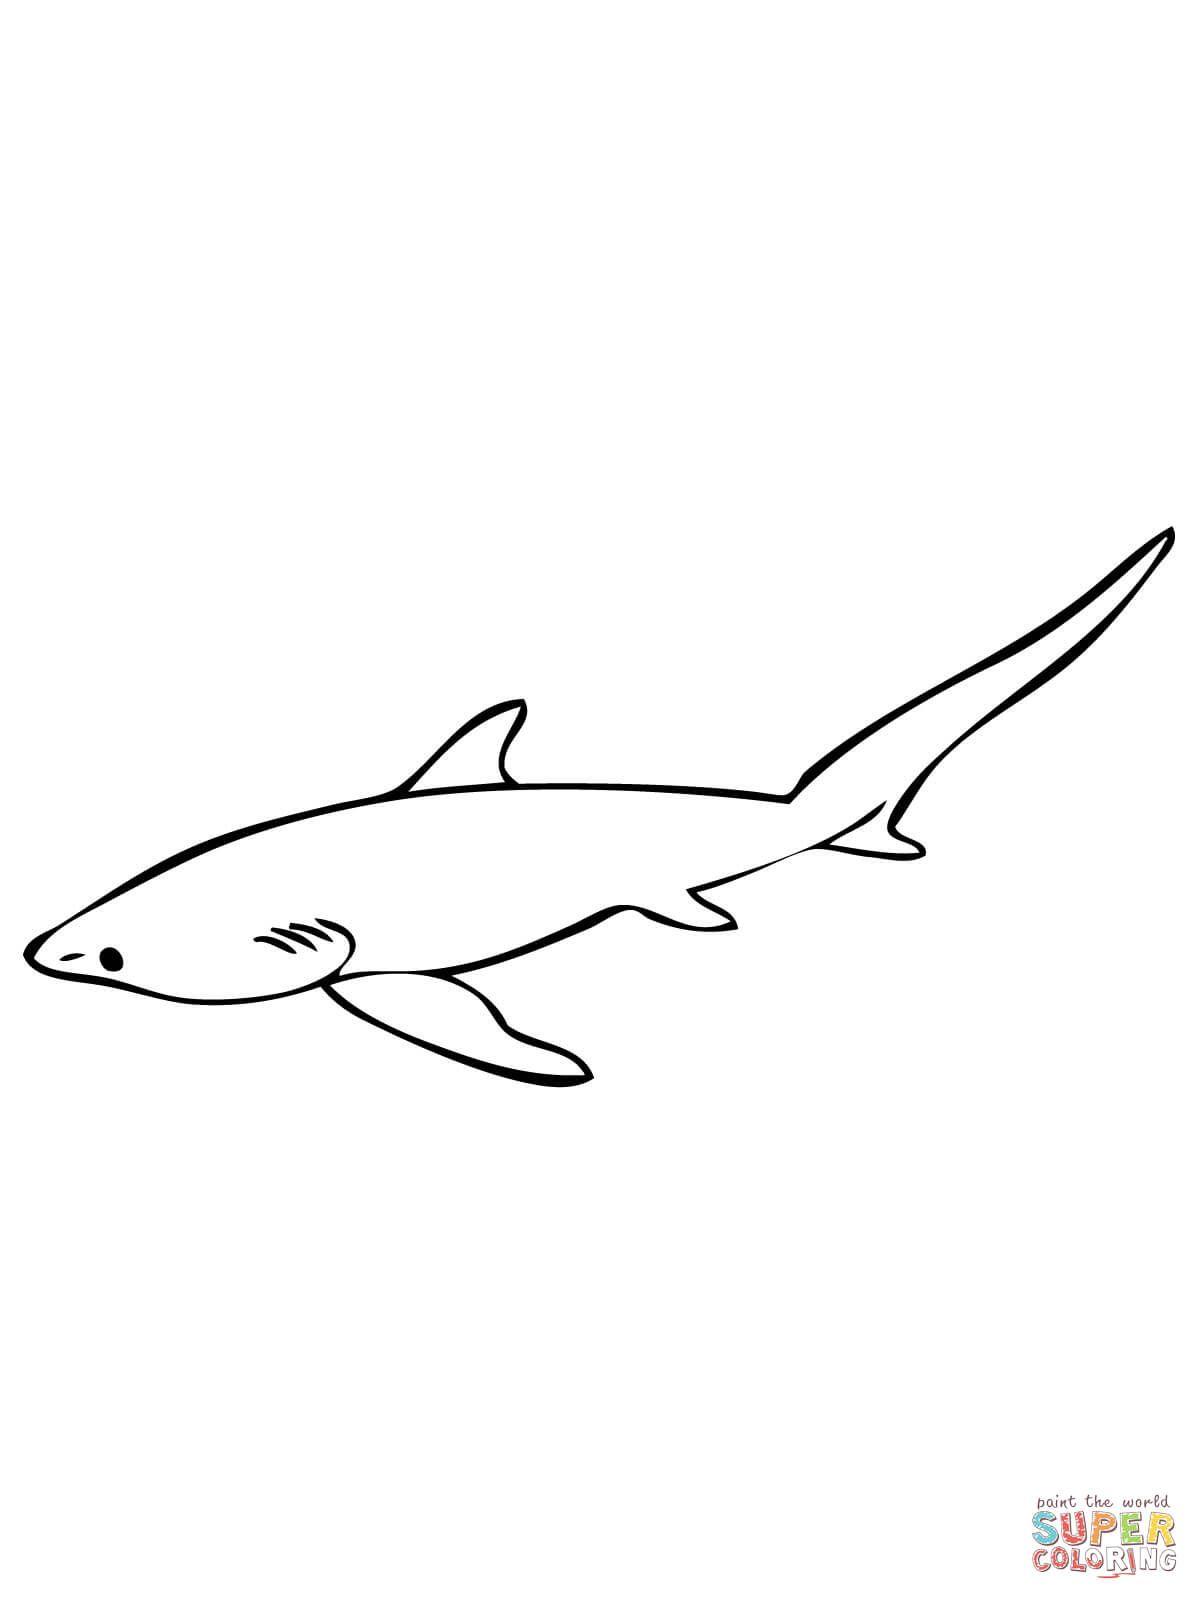 Thresher Shark or Fox Shark Super